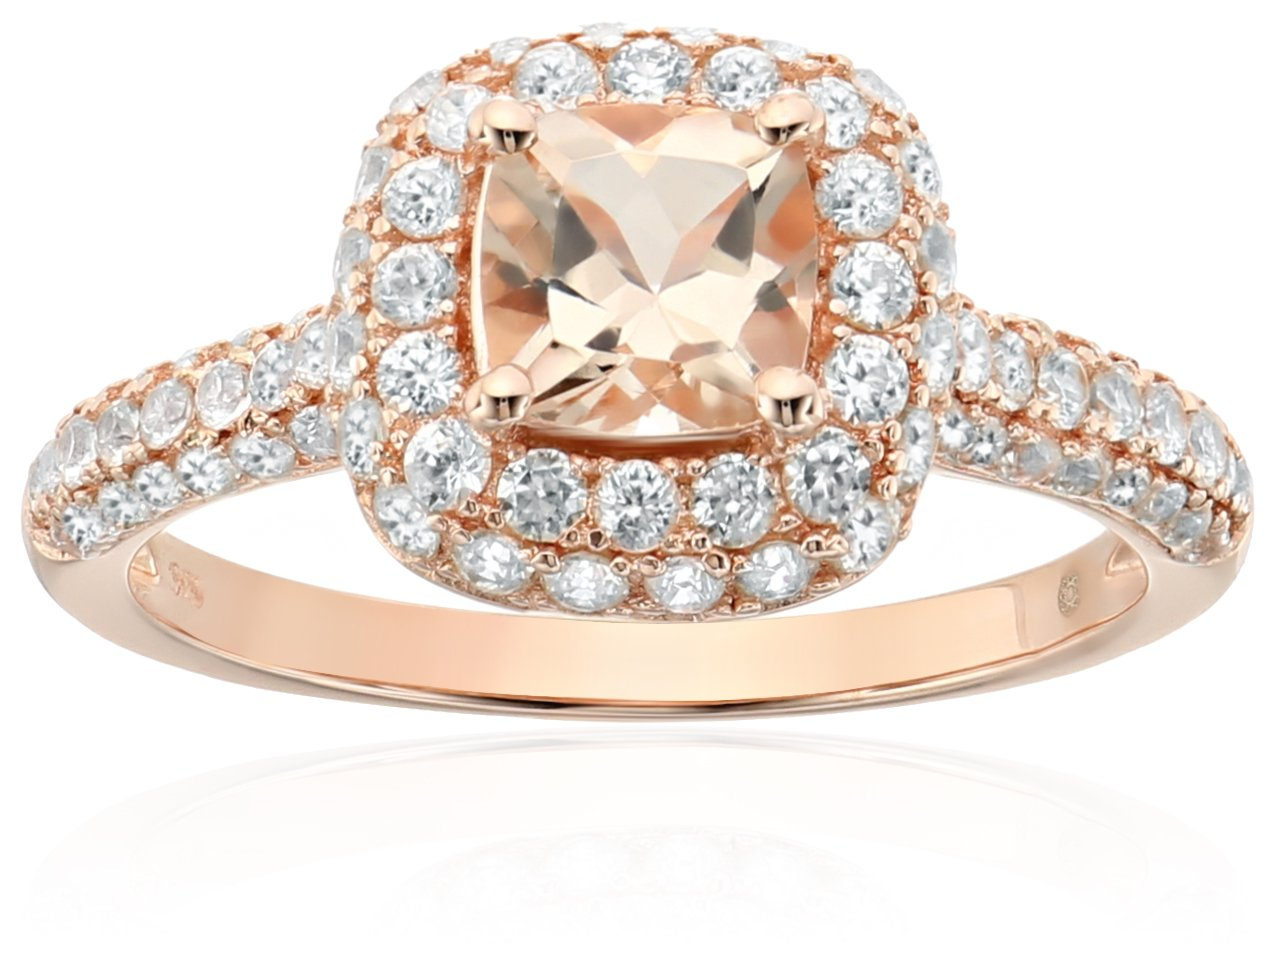 Rose Gold-Plated Silver Morganite Cushion Halo Engagement Ring, Size 7